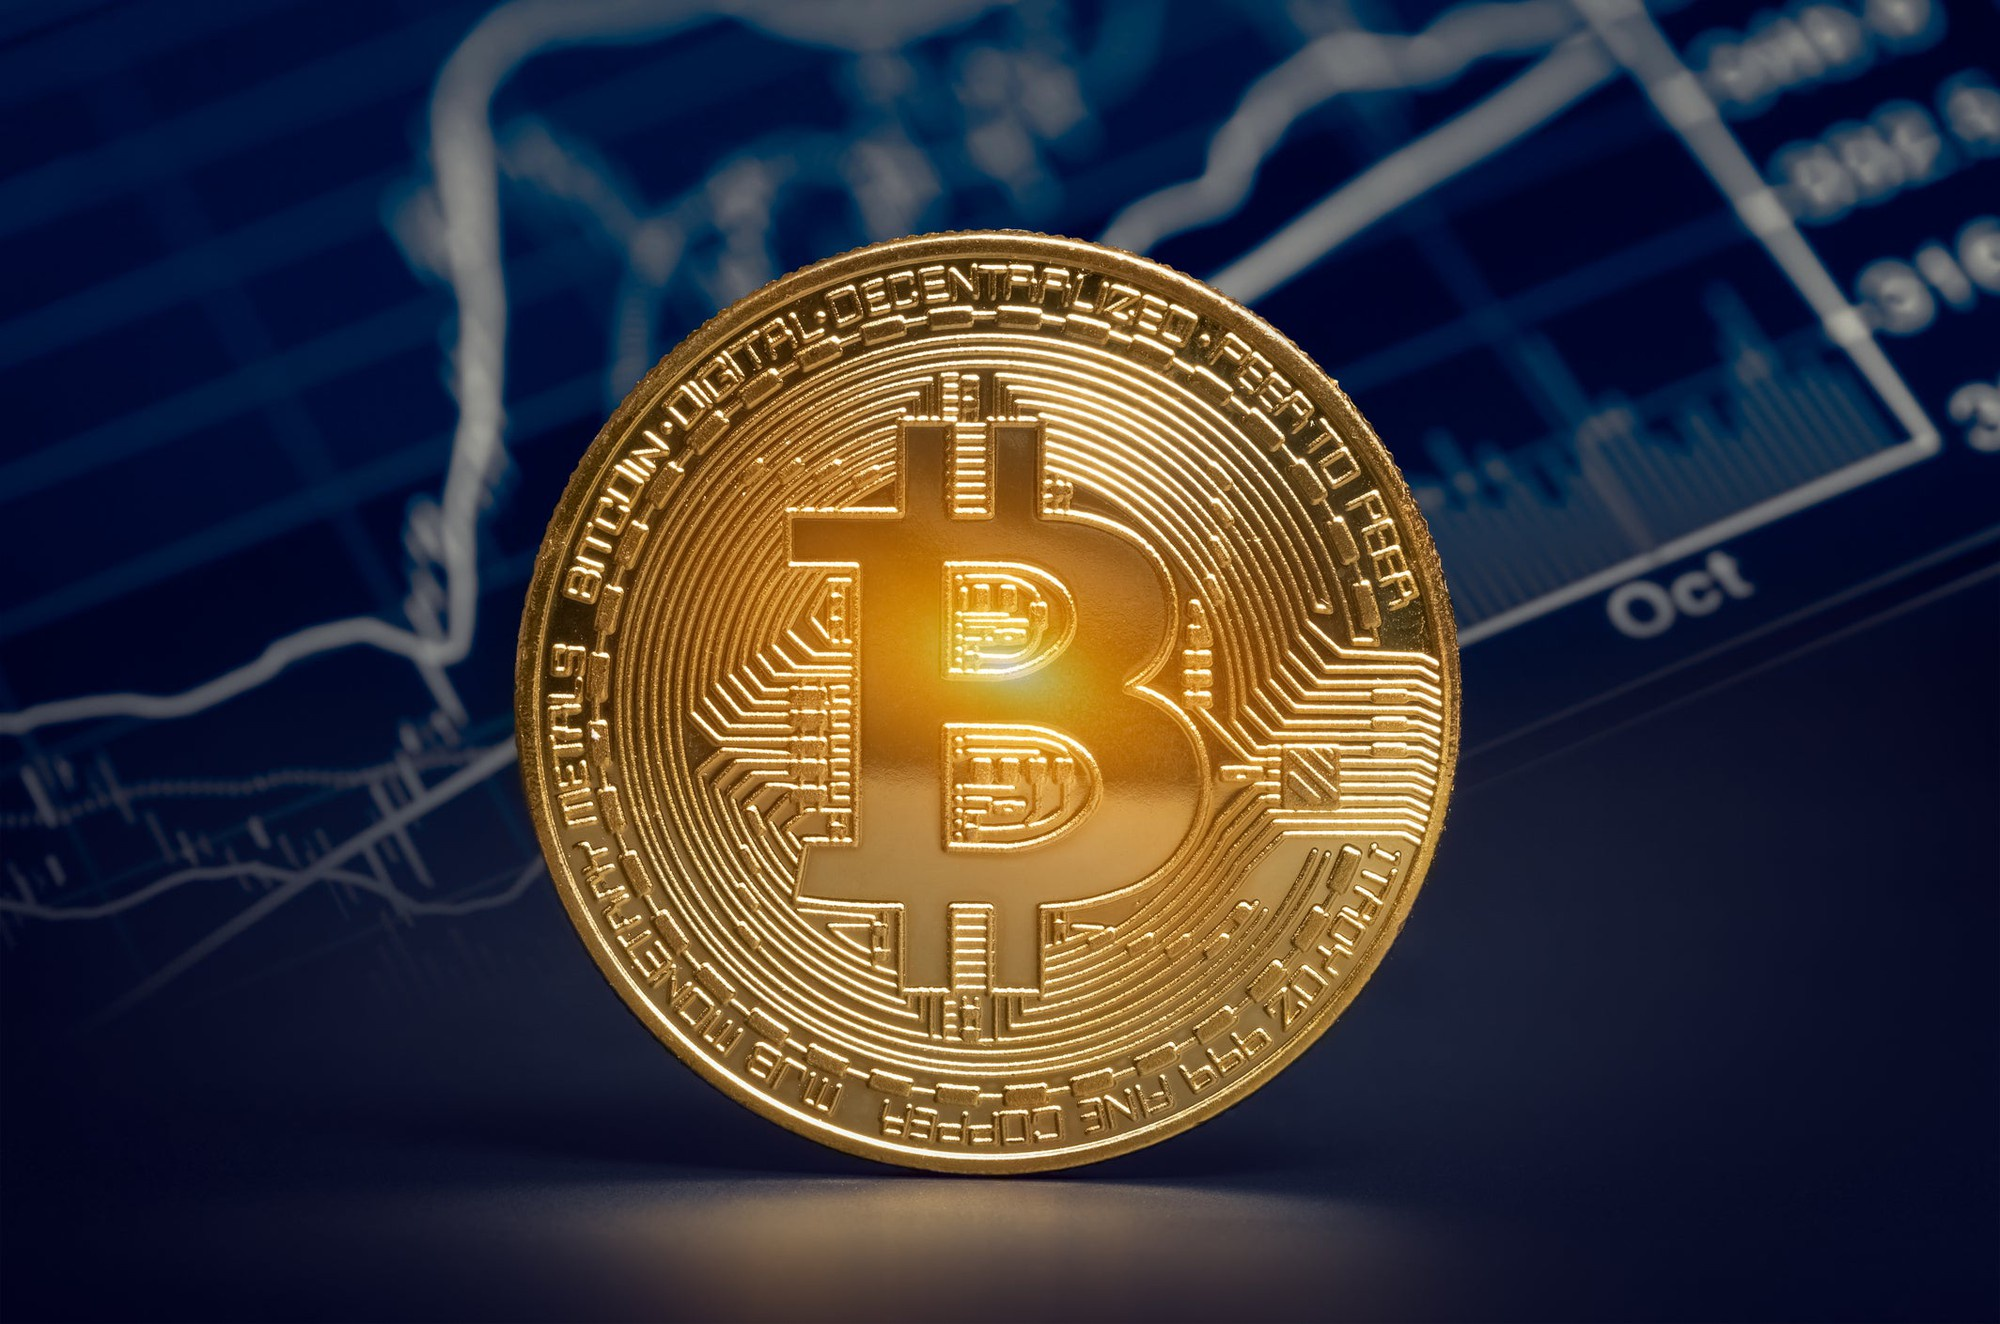 A physical gold bitcoin stood in front of a digital chart with visible price and volume metrics.